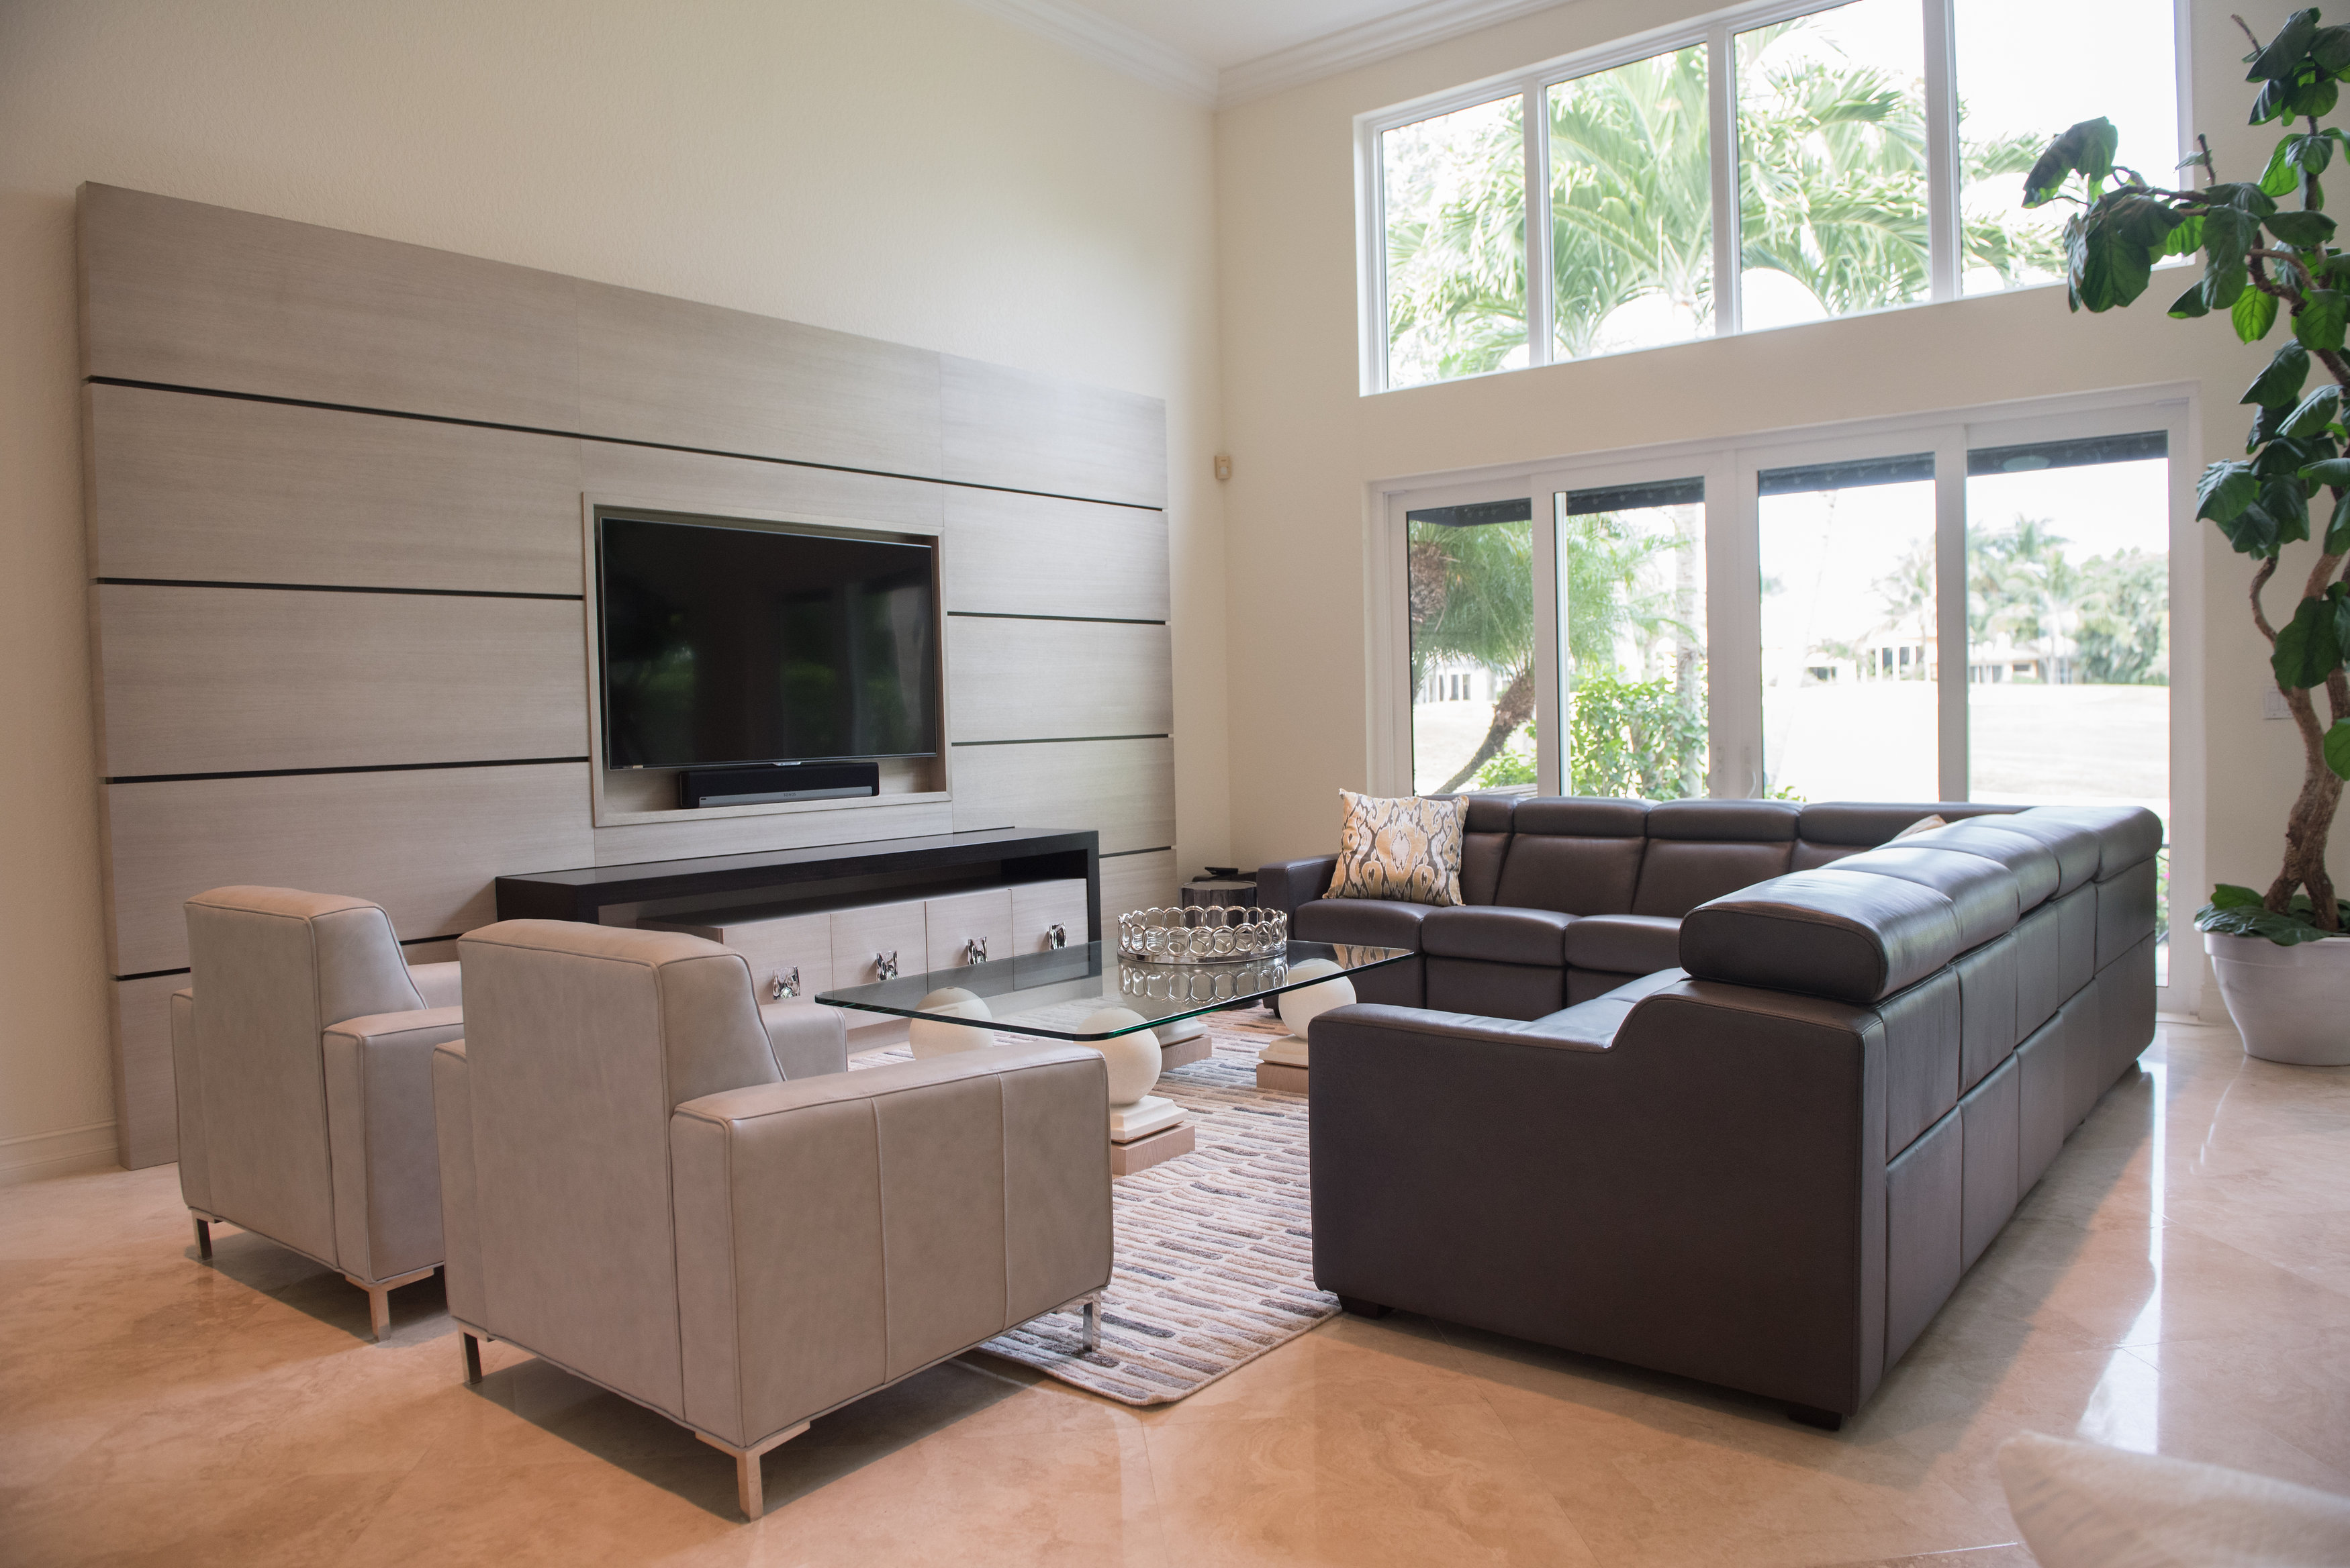 Shea Interiors - Home & Office Interior Decorating in Weston, FL 33327